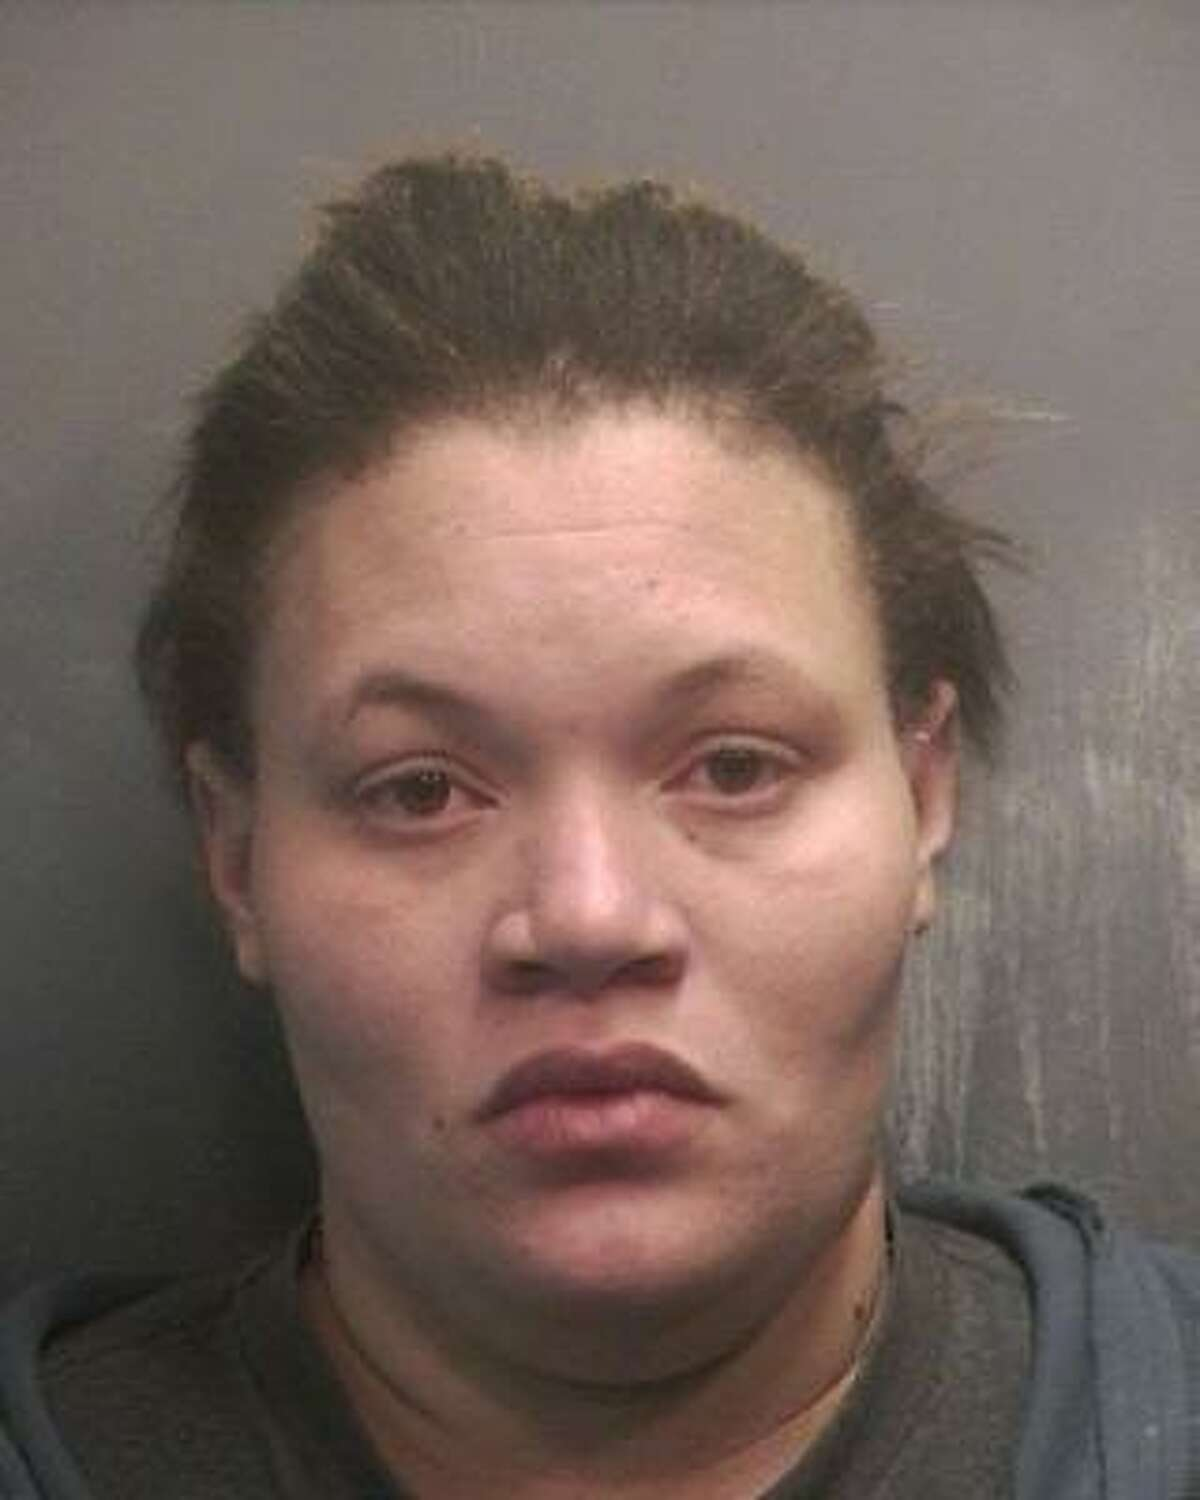 Devanira Sepulveda, 31, was arrested last week on a charge of aggravated promotion of prostitution.